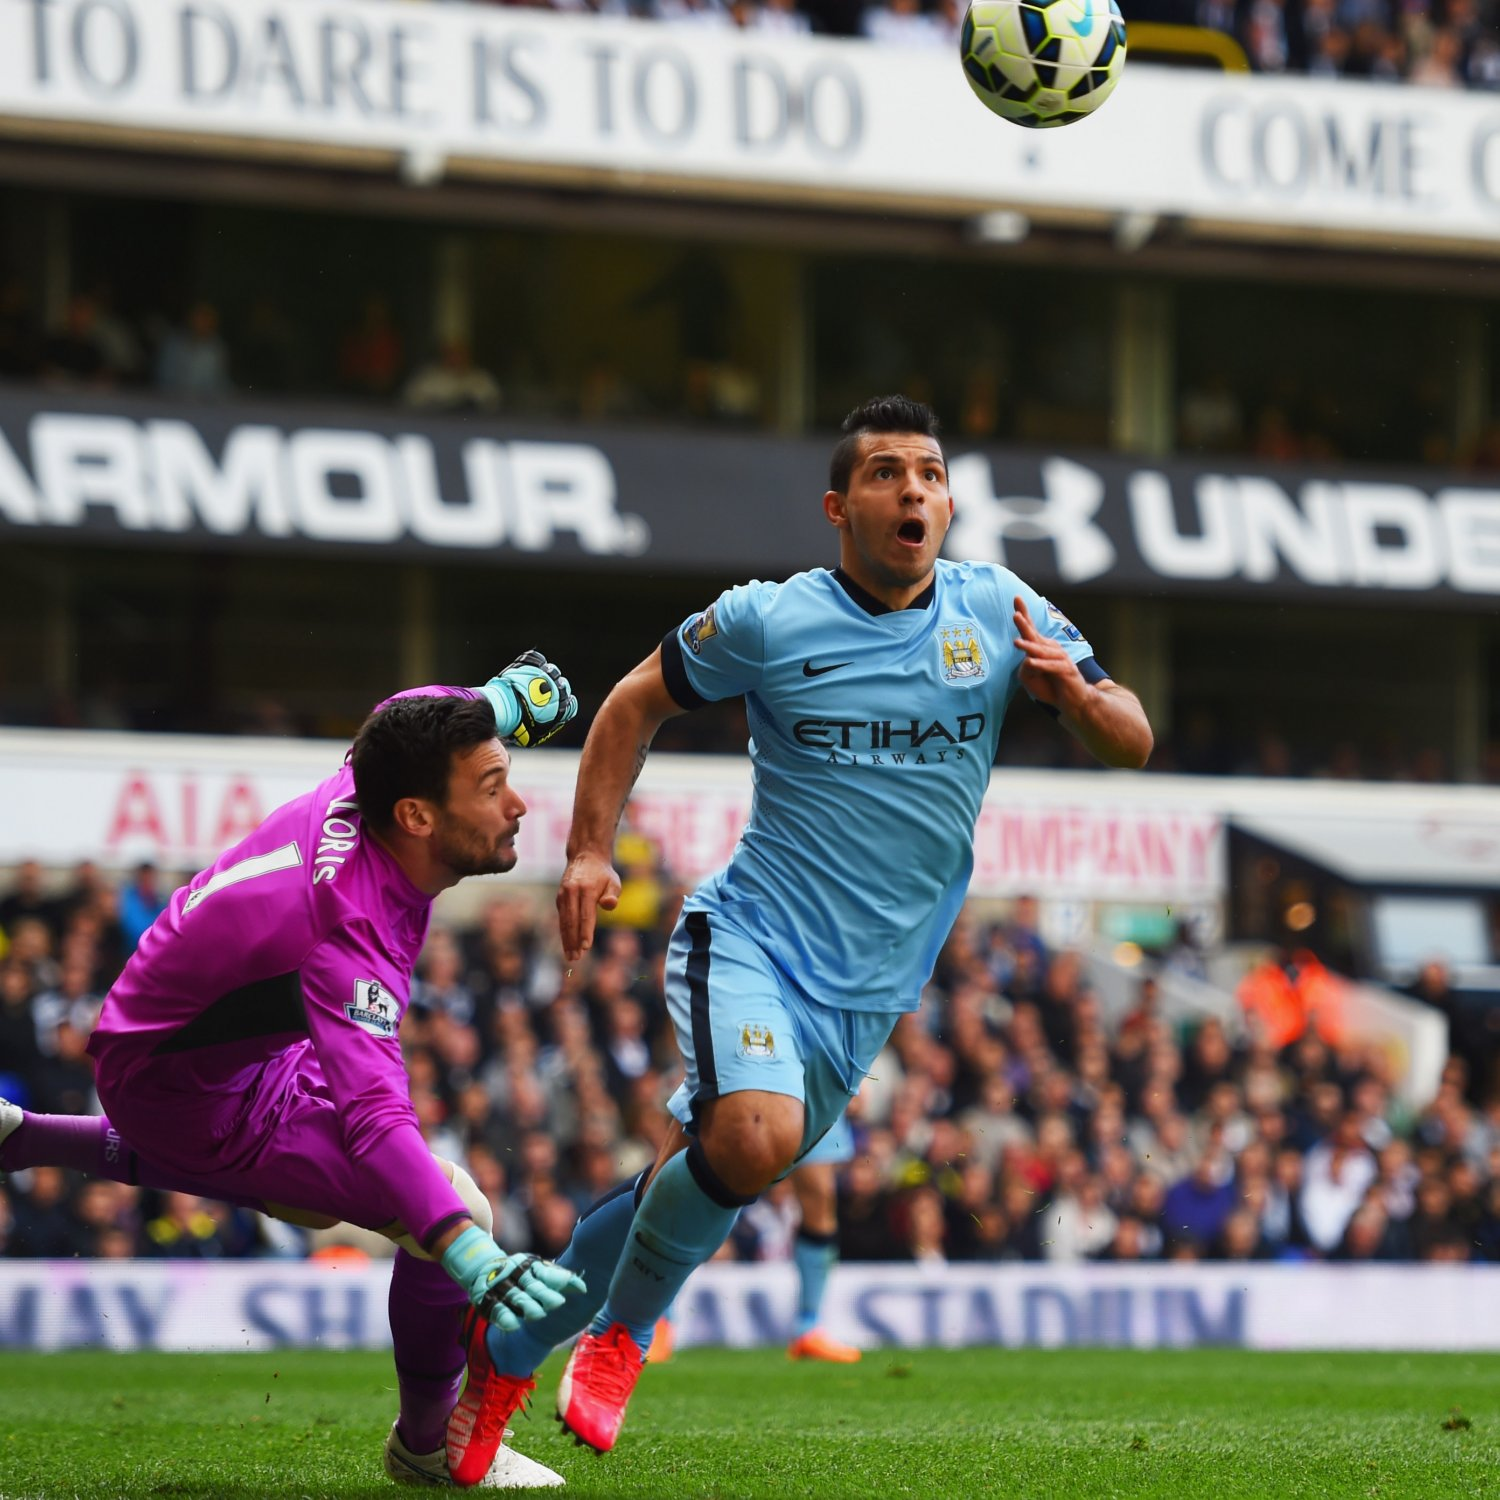 Psg Vs Manchester City Live Score Highlights From: Tottenham Vs. Manchester City: Live Score, Highlights From